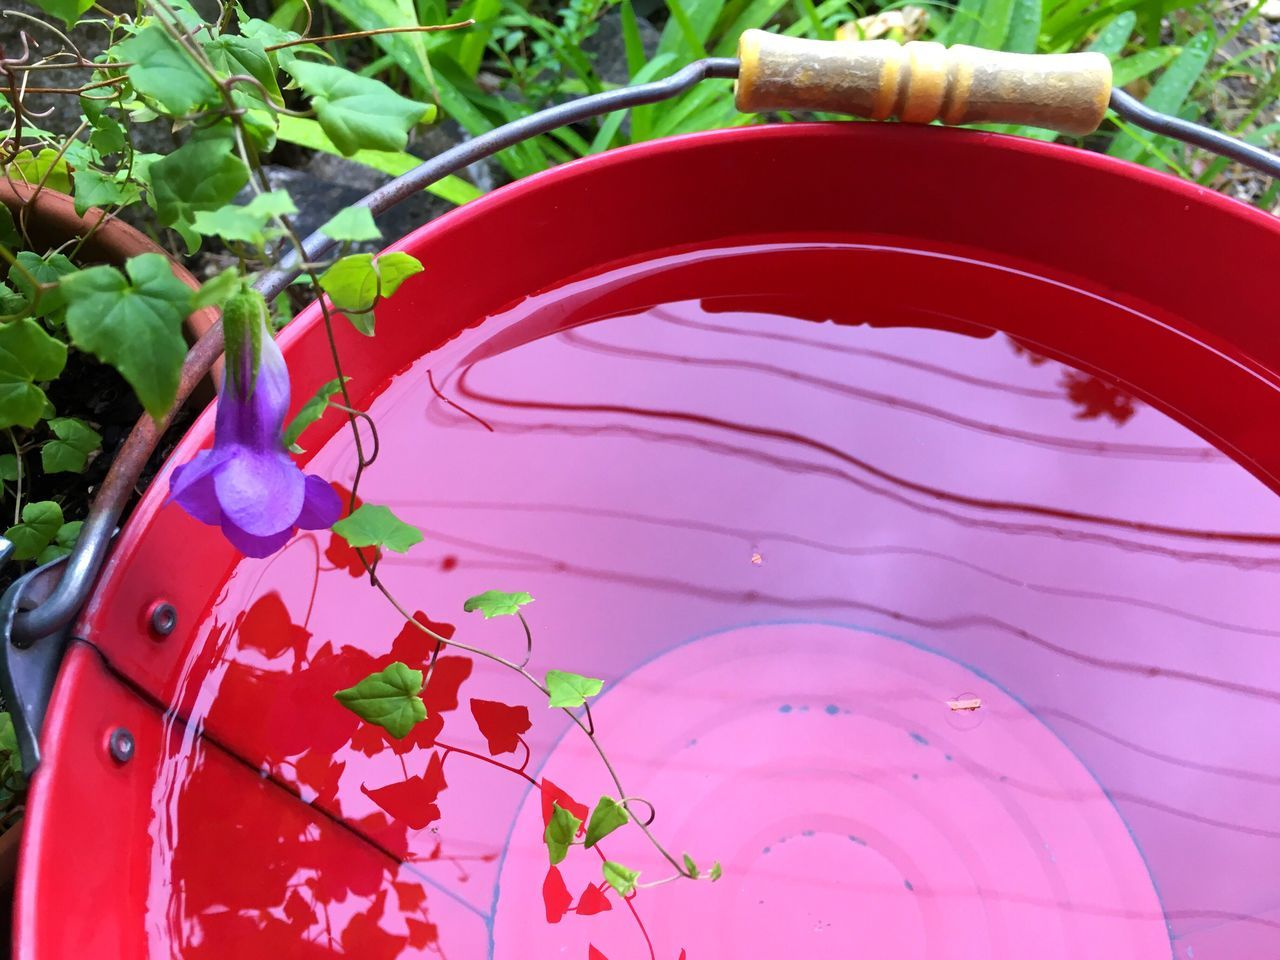 growth, plant, leaf, day, pink color, outdoors, front or back yard, no people, nature, red, watering can, close-up, freshness, tree, fragility